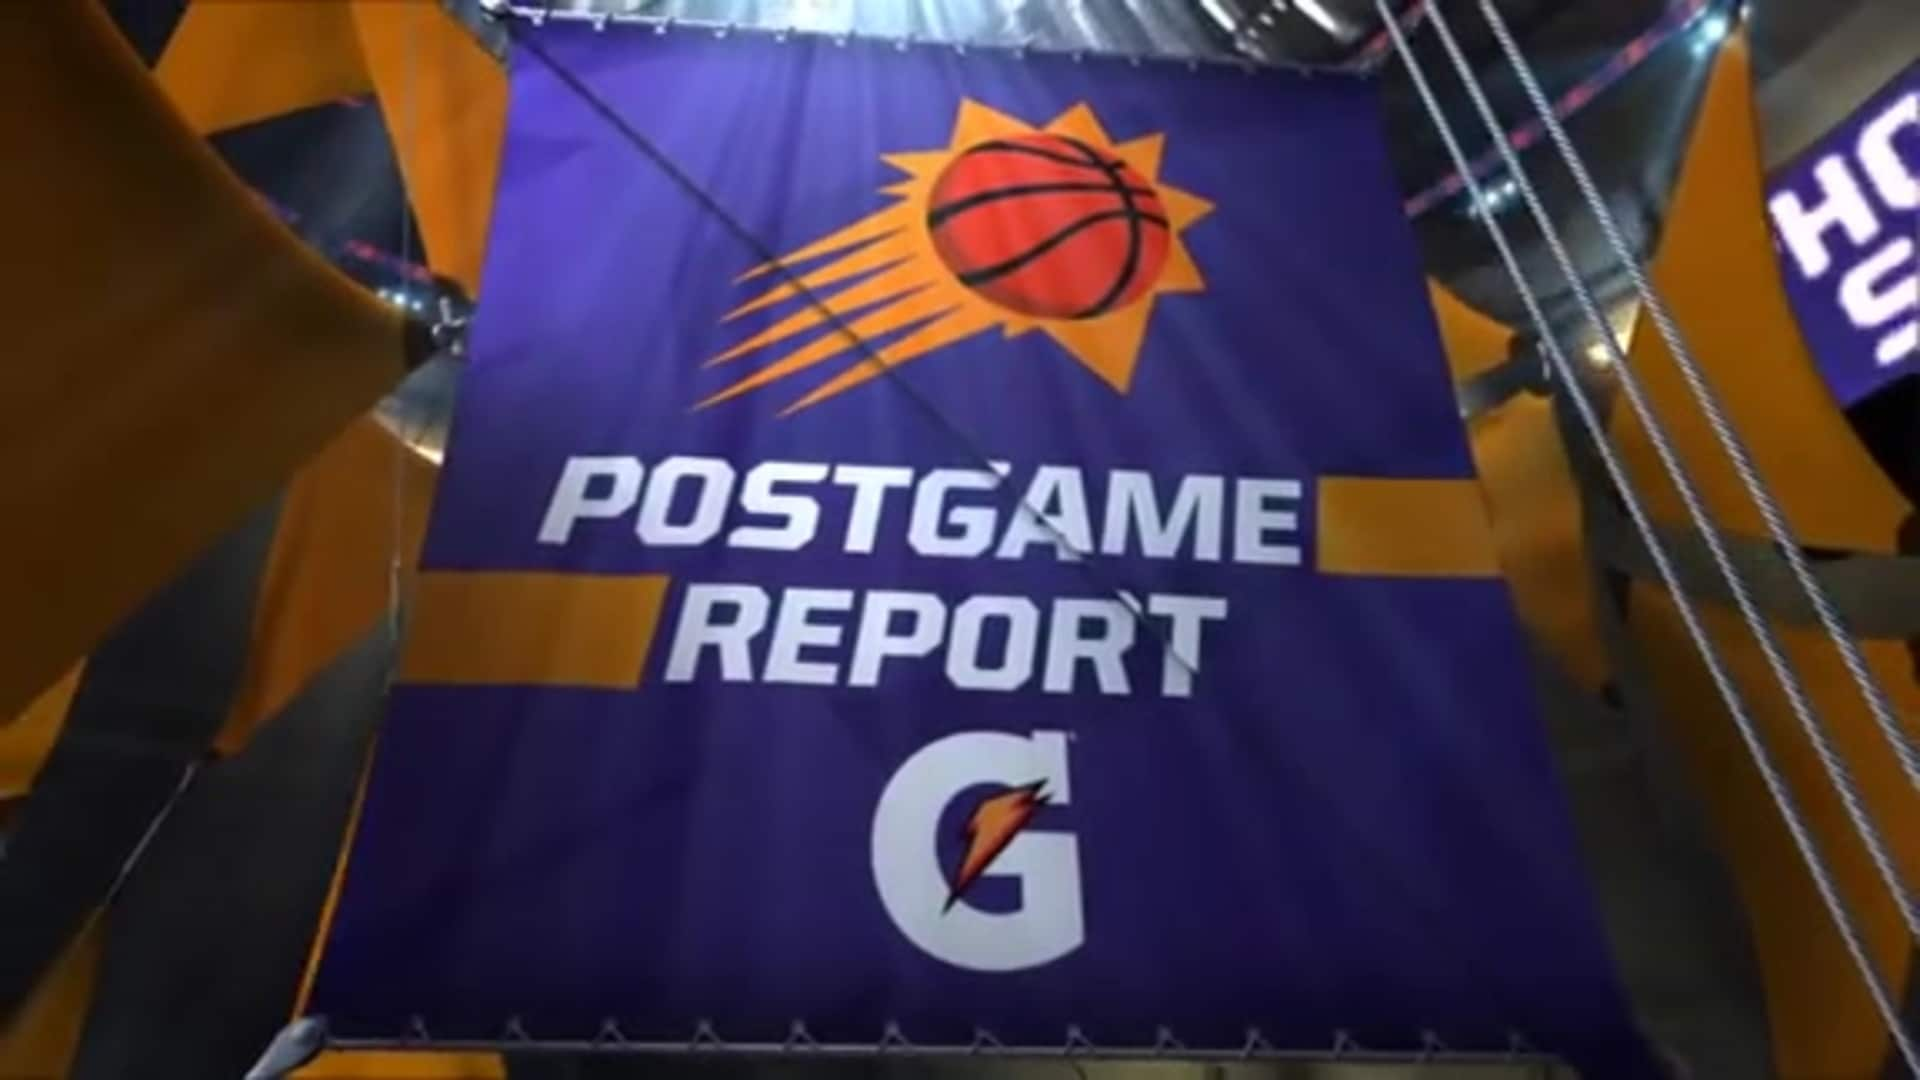 Gatorade Postgame Report: Suns vs. Kings 2019-20